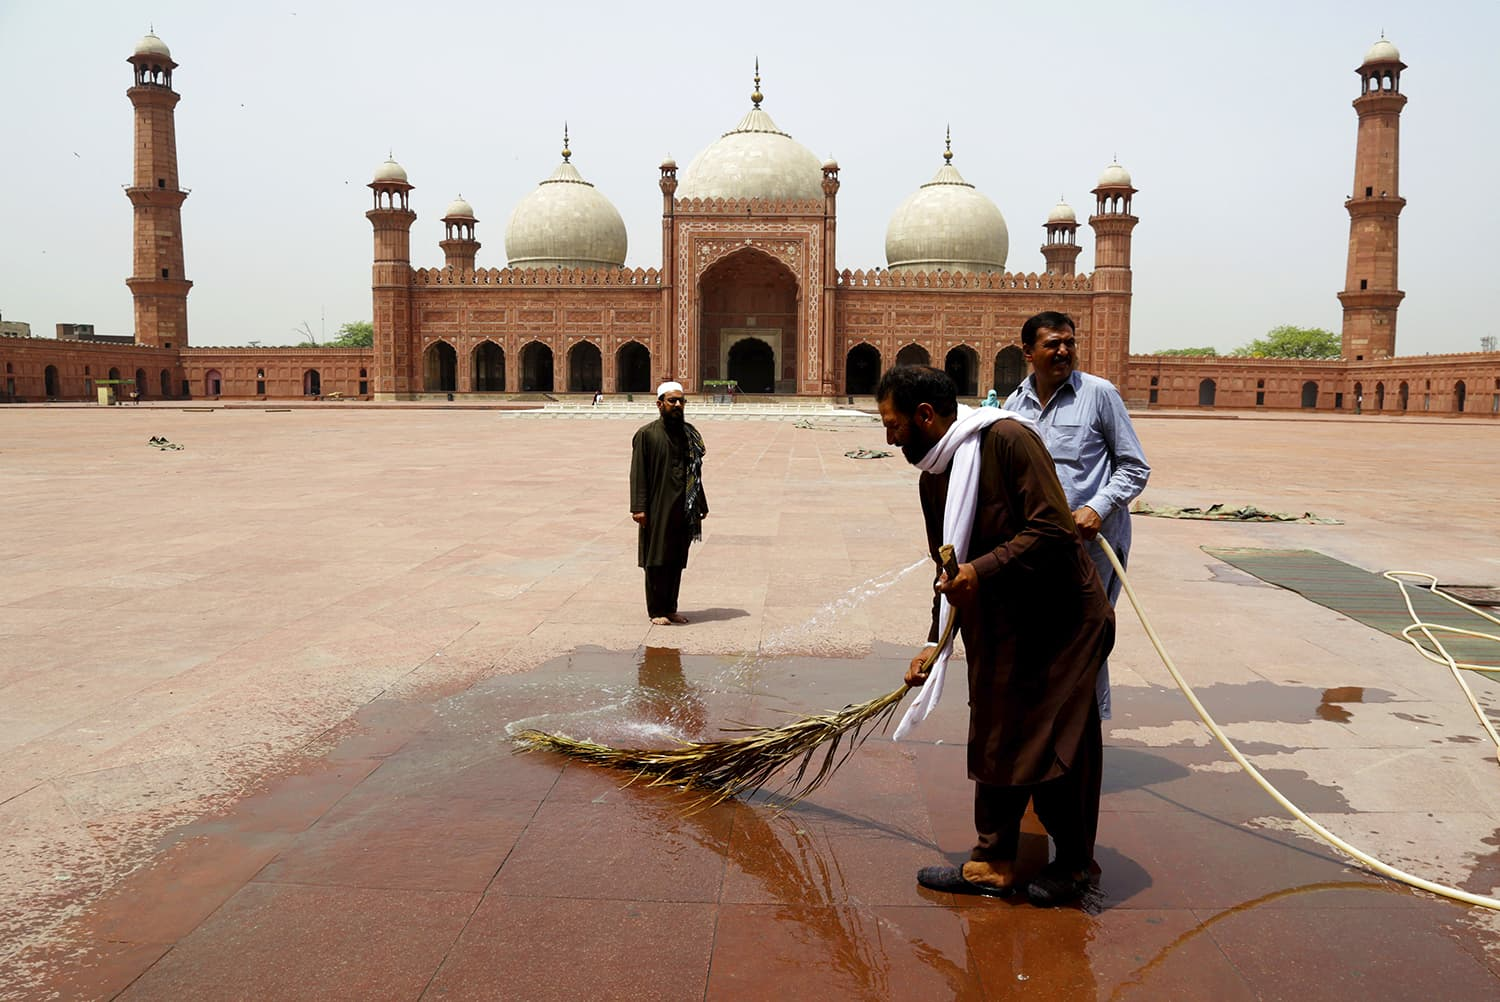 Pakistanis wash the courtyard of the historical Badshahi Mosque in preparation for the month of Ramazan in Lahore, Pakistan on Wednesday. — AP